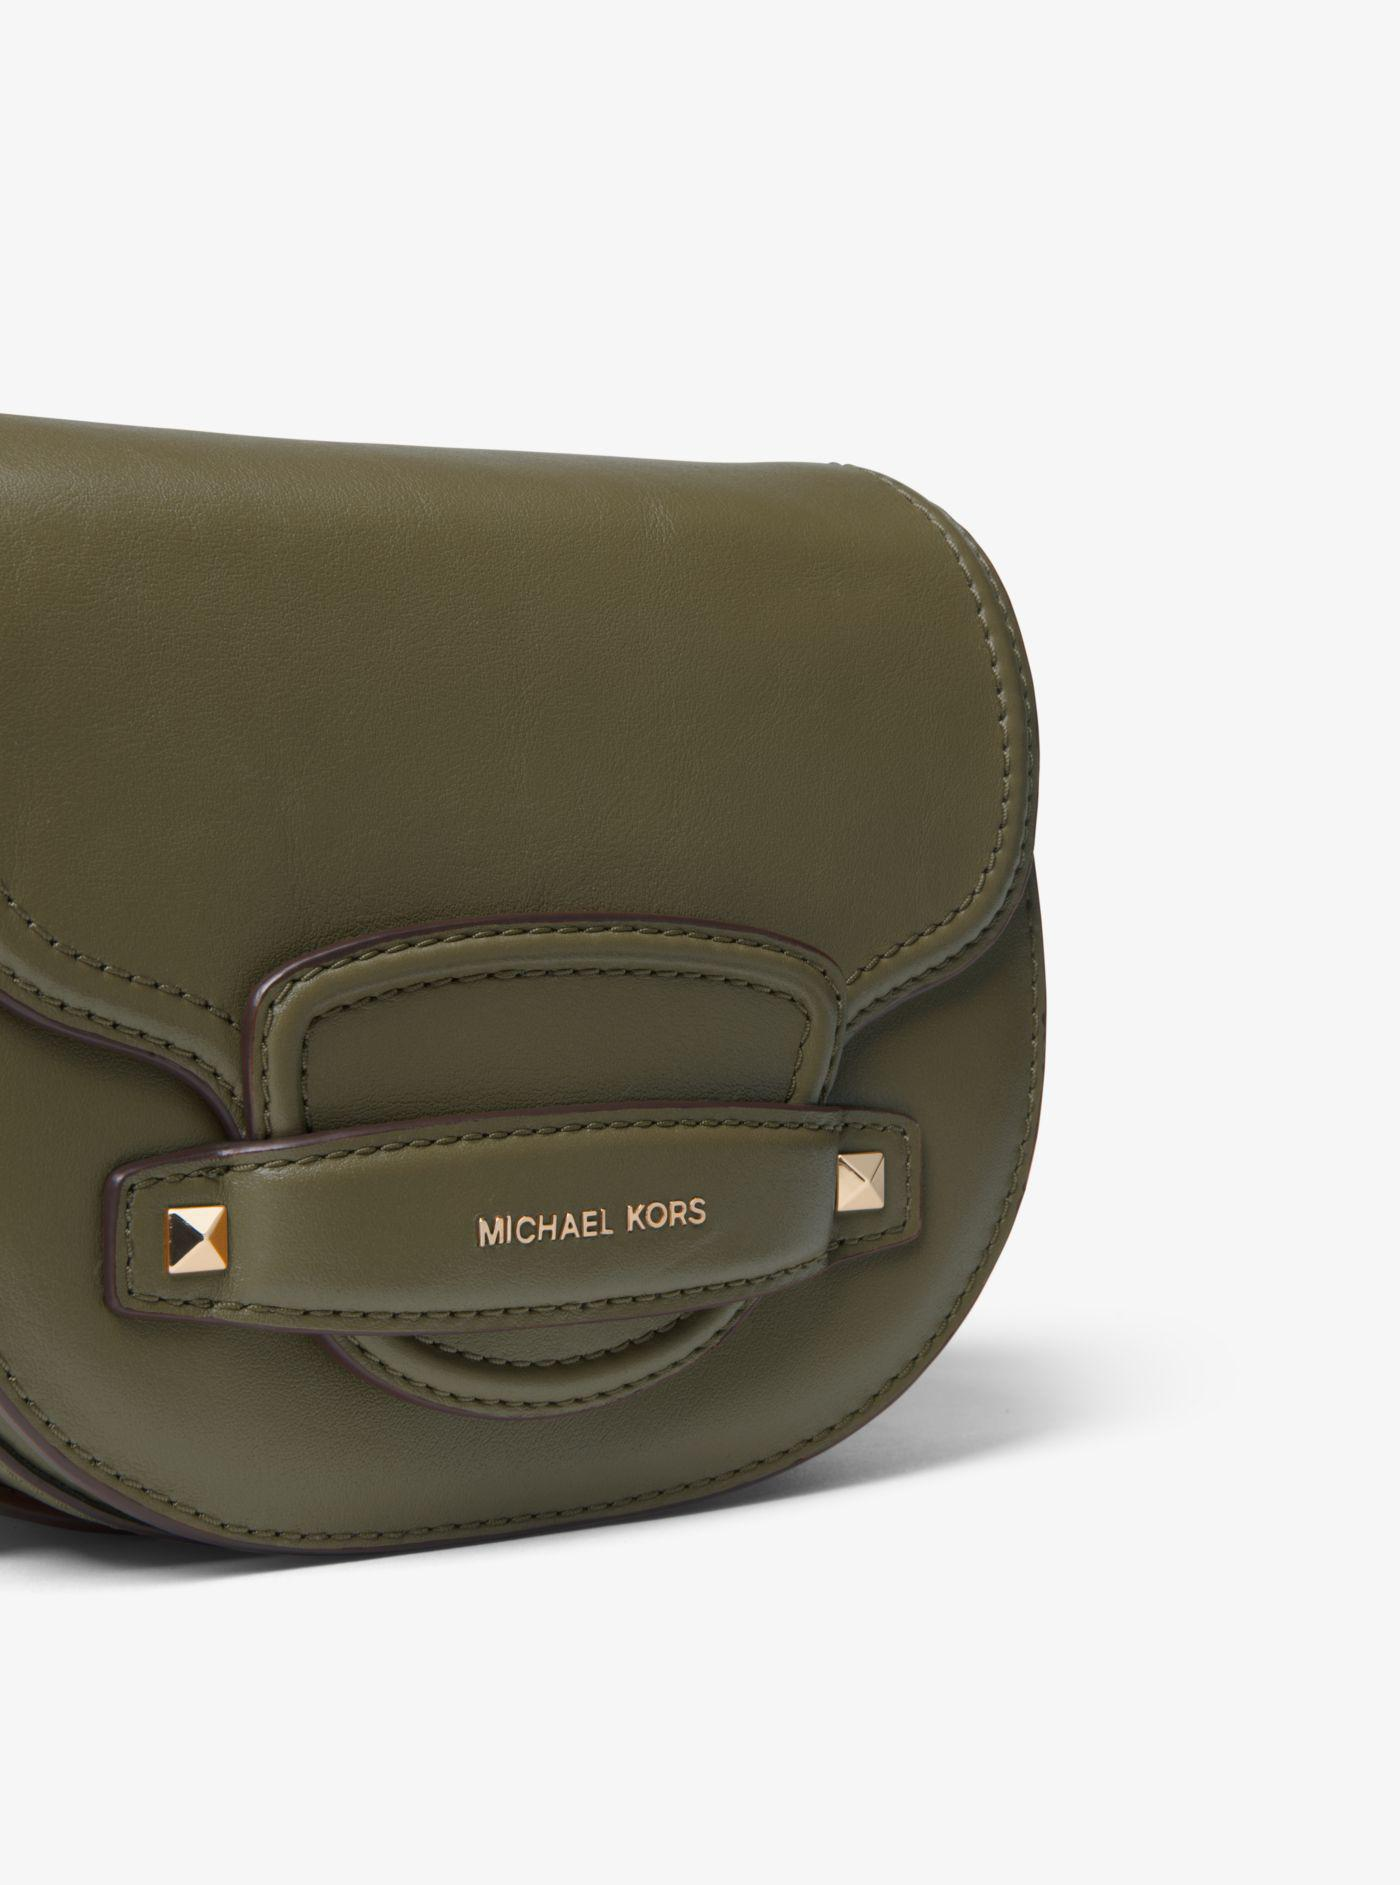 f3105bce3852 Lyst - Michael Kors Cary Small Leather Saddle Bag in Green